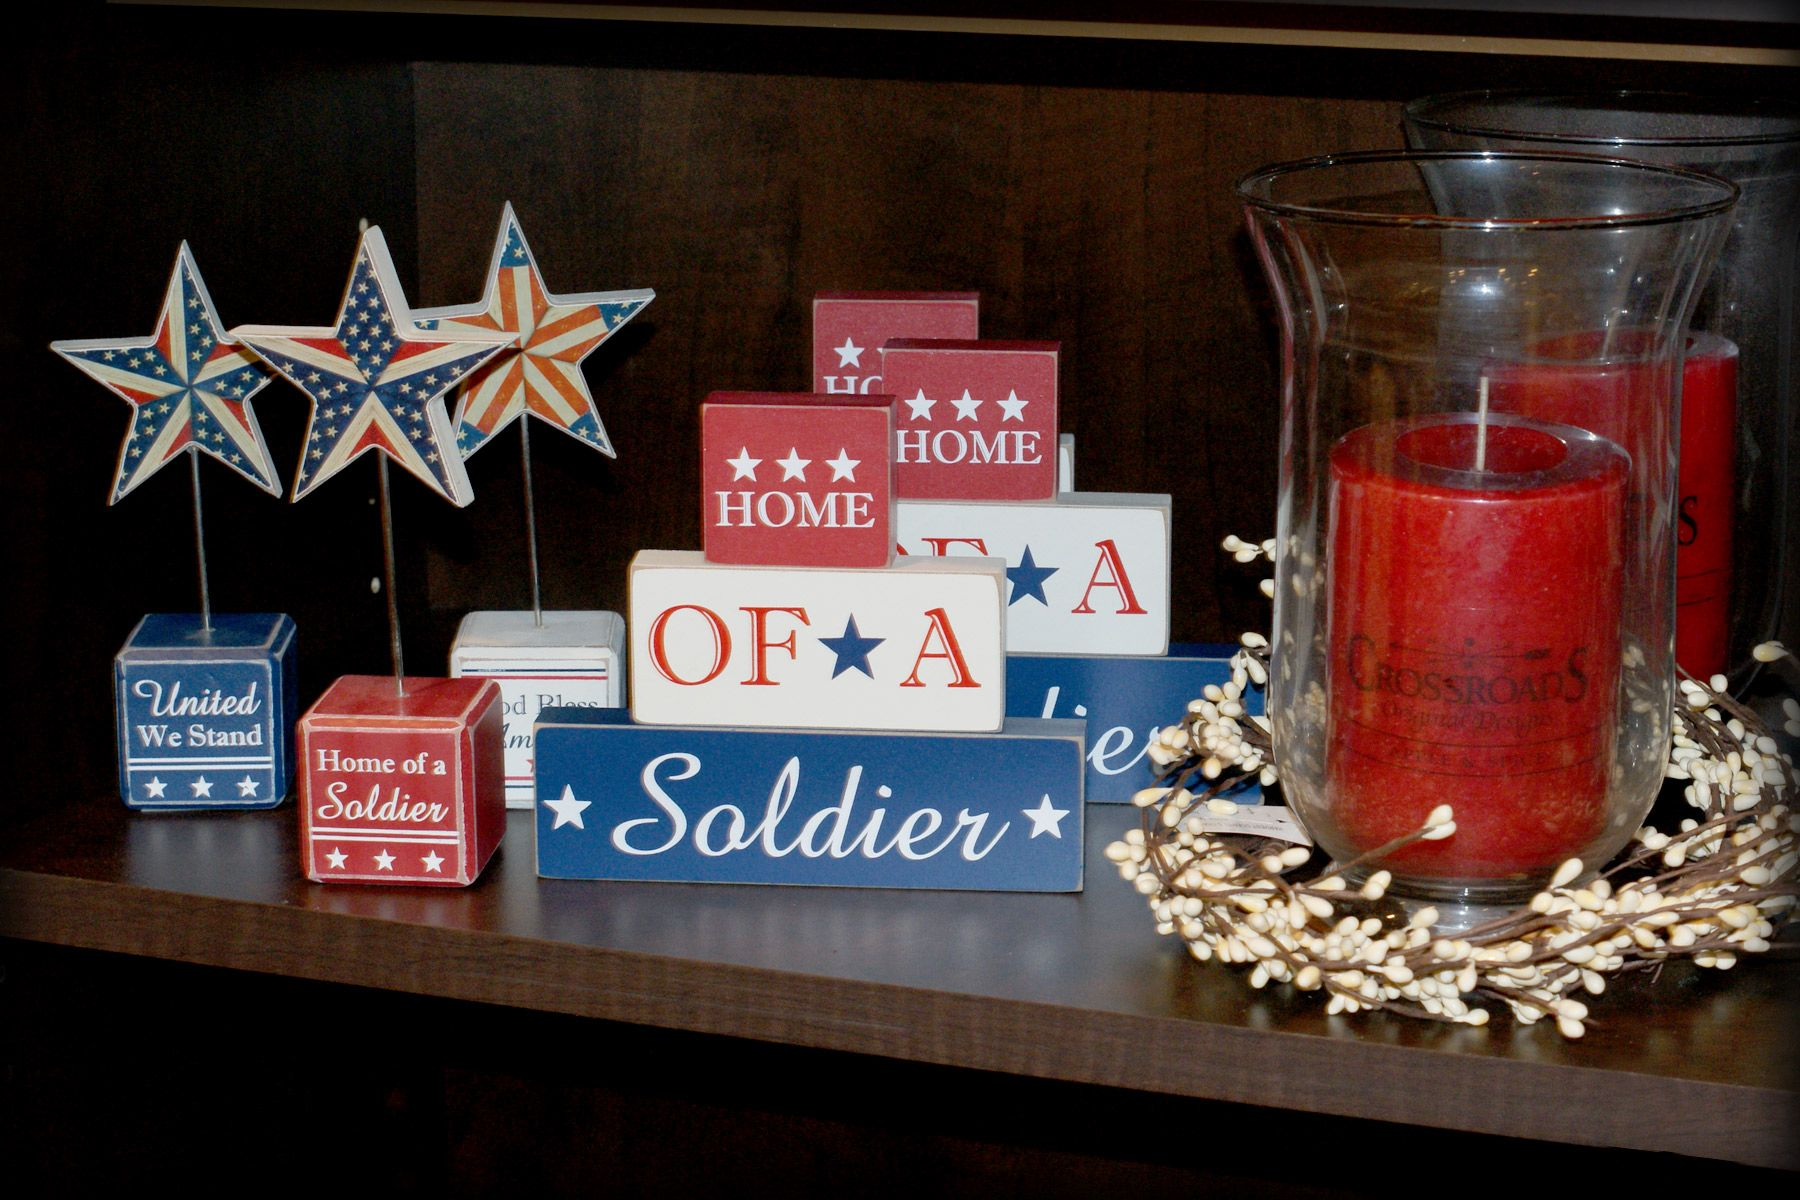 Pin By Pam Munshower On Party Theme: Holiday 4th Of July